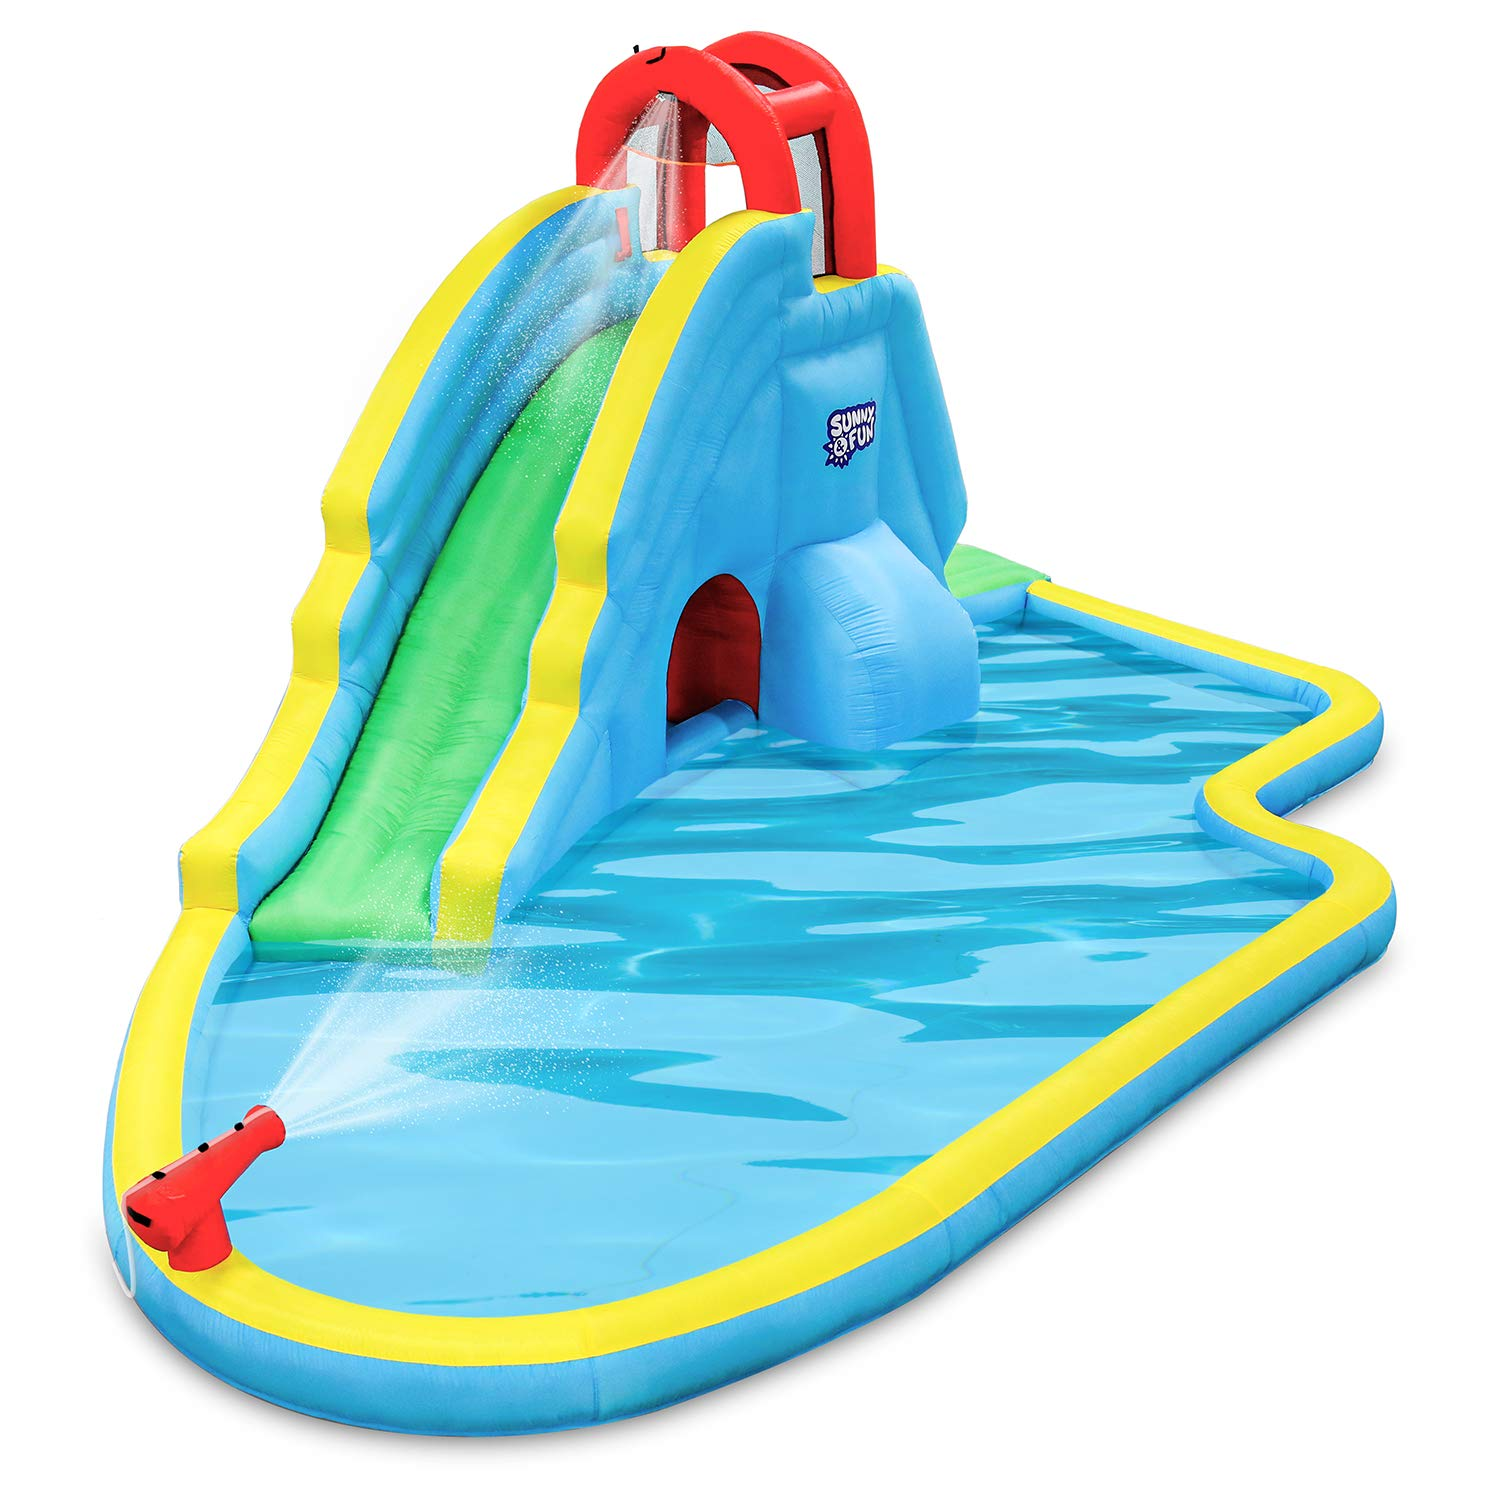 Top 7 Best Water Slide Pools Inflatable Reviews in 2020 1